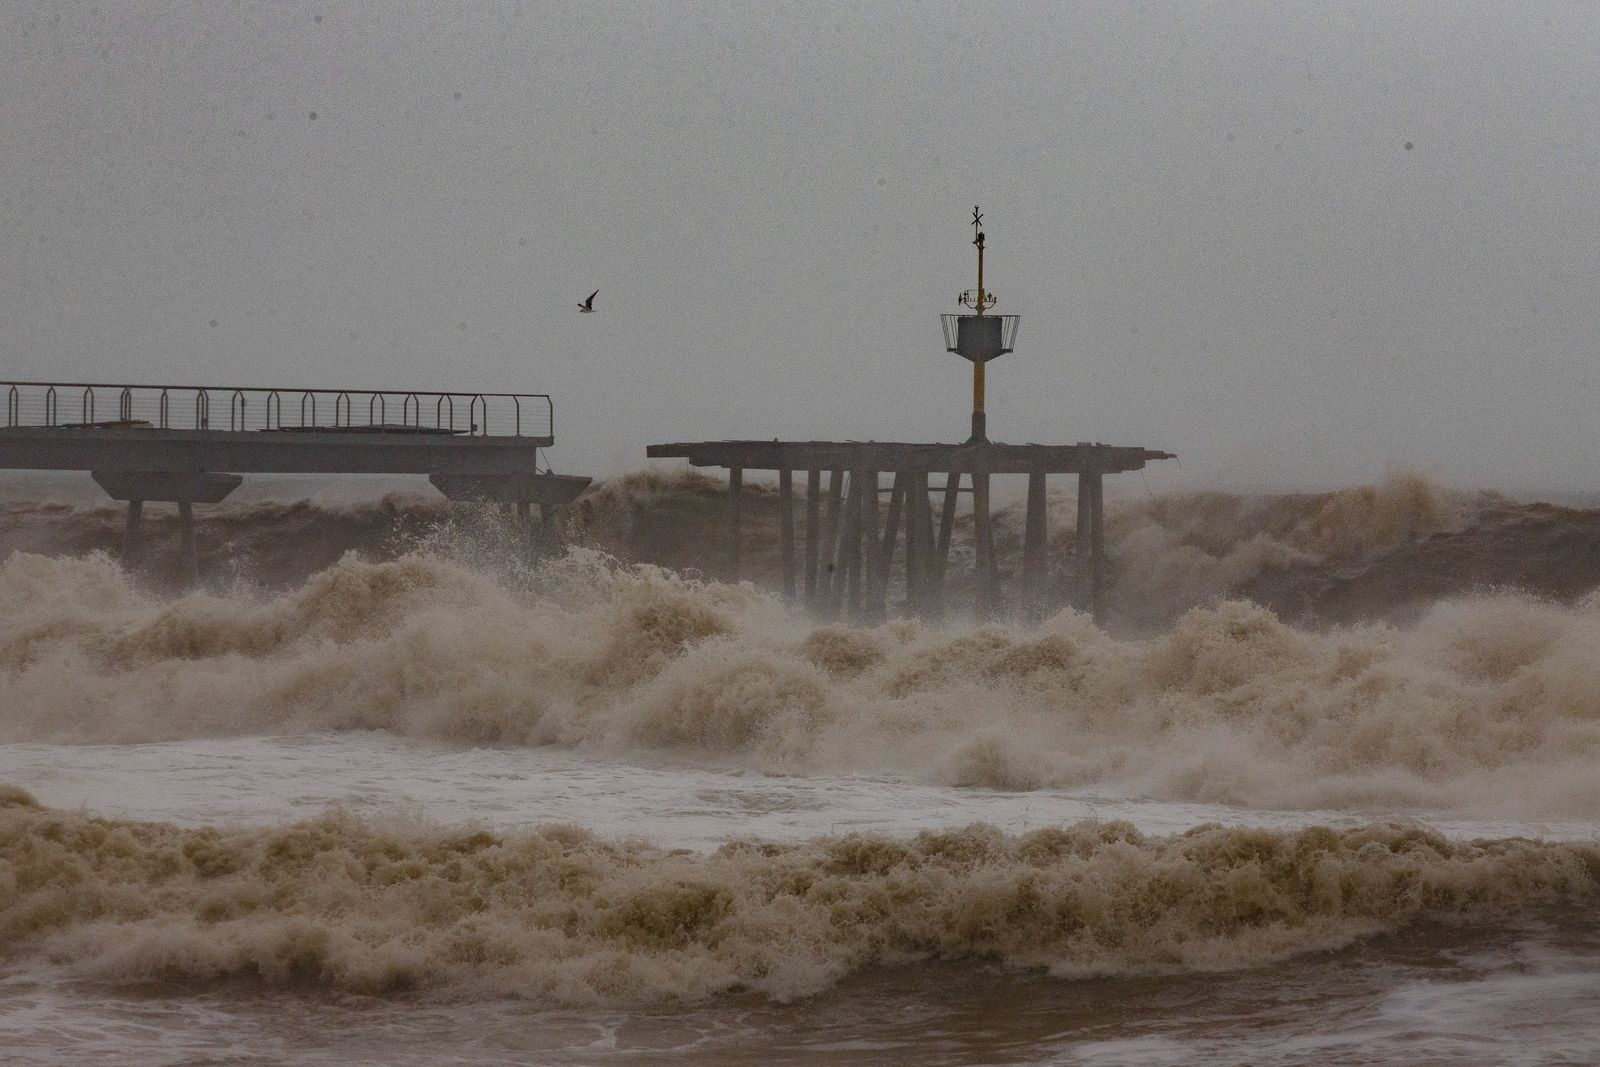 Waves hit a partially damage bridge during a storm in Badalona's beach, outskirts of Barcelona, Spain, Wednesday, Jan. 22, 2020. (AP Photo/Joan Mateu)